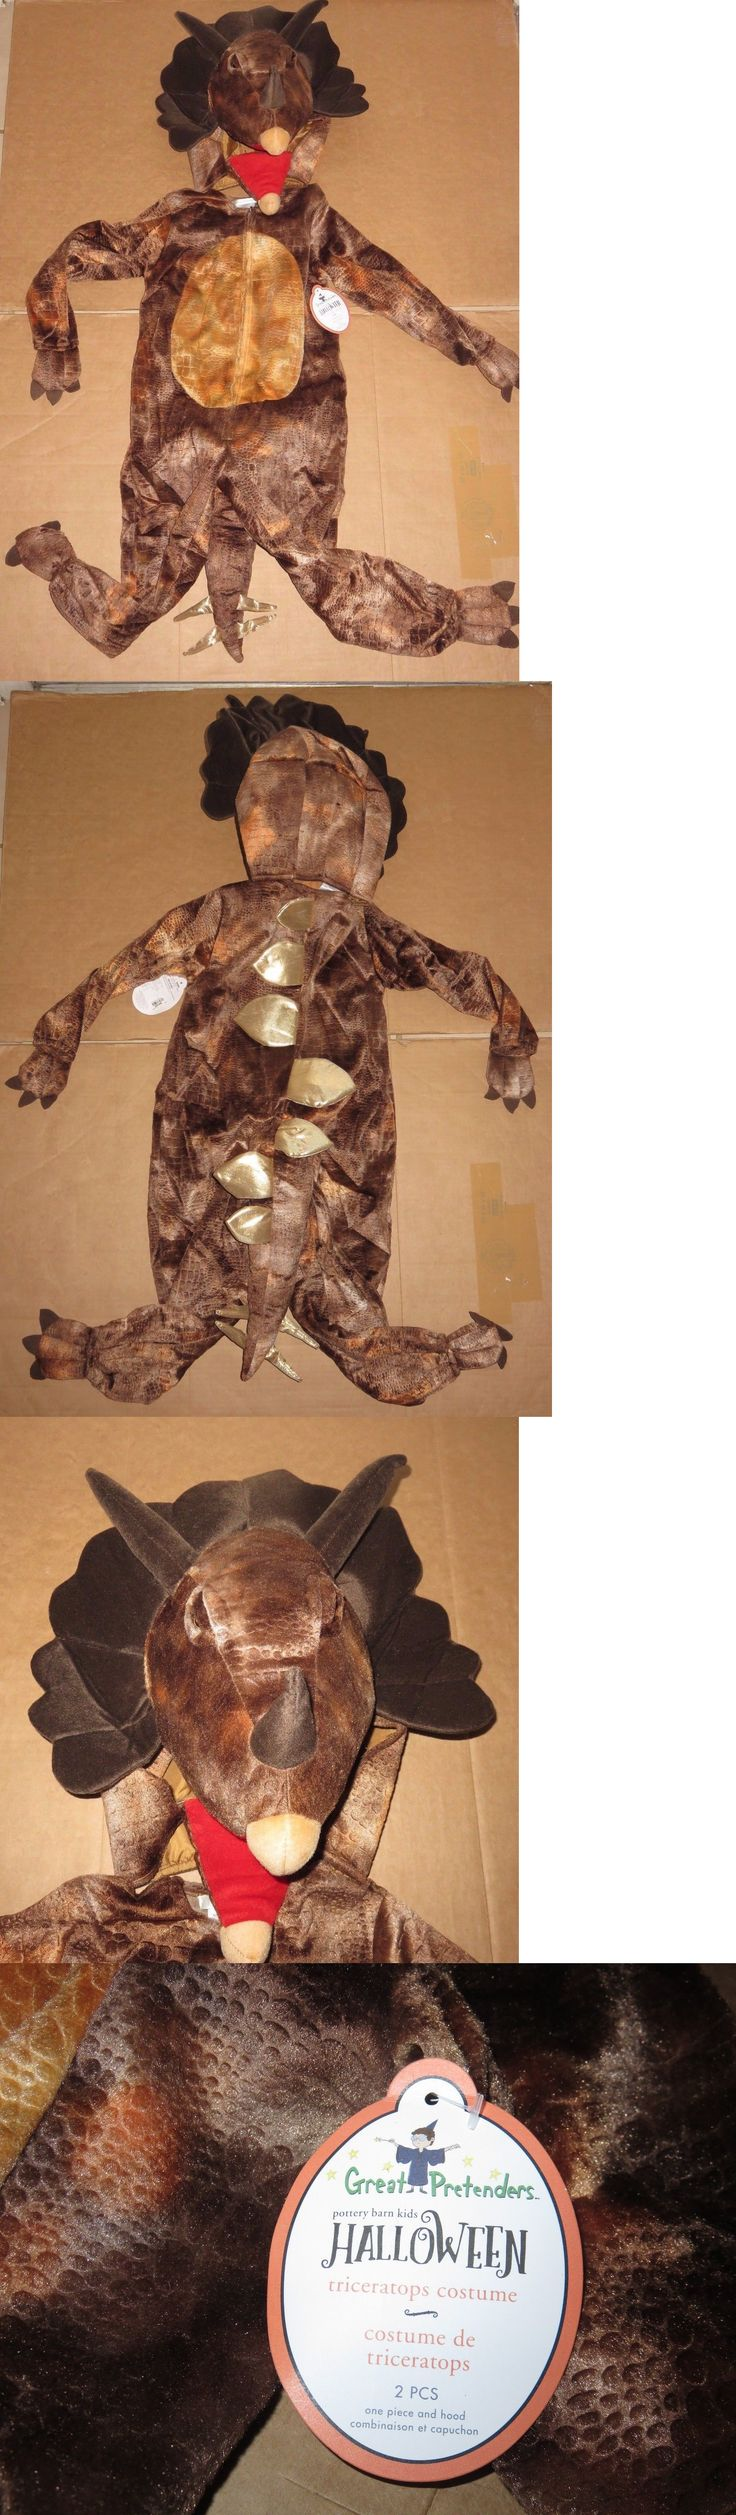 Halloween Costumes Kids: 2Pc Nwt Pottery Barn Kids Triceratops Dinosaur Halloween Costume, 4-6 Years, New BUY IT NOW ONLY: $84.5